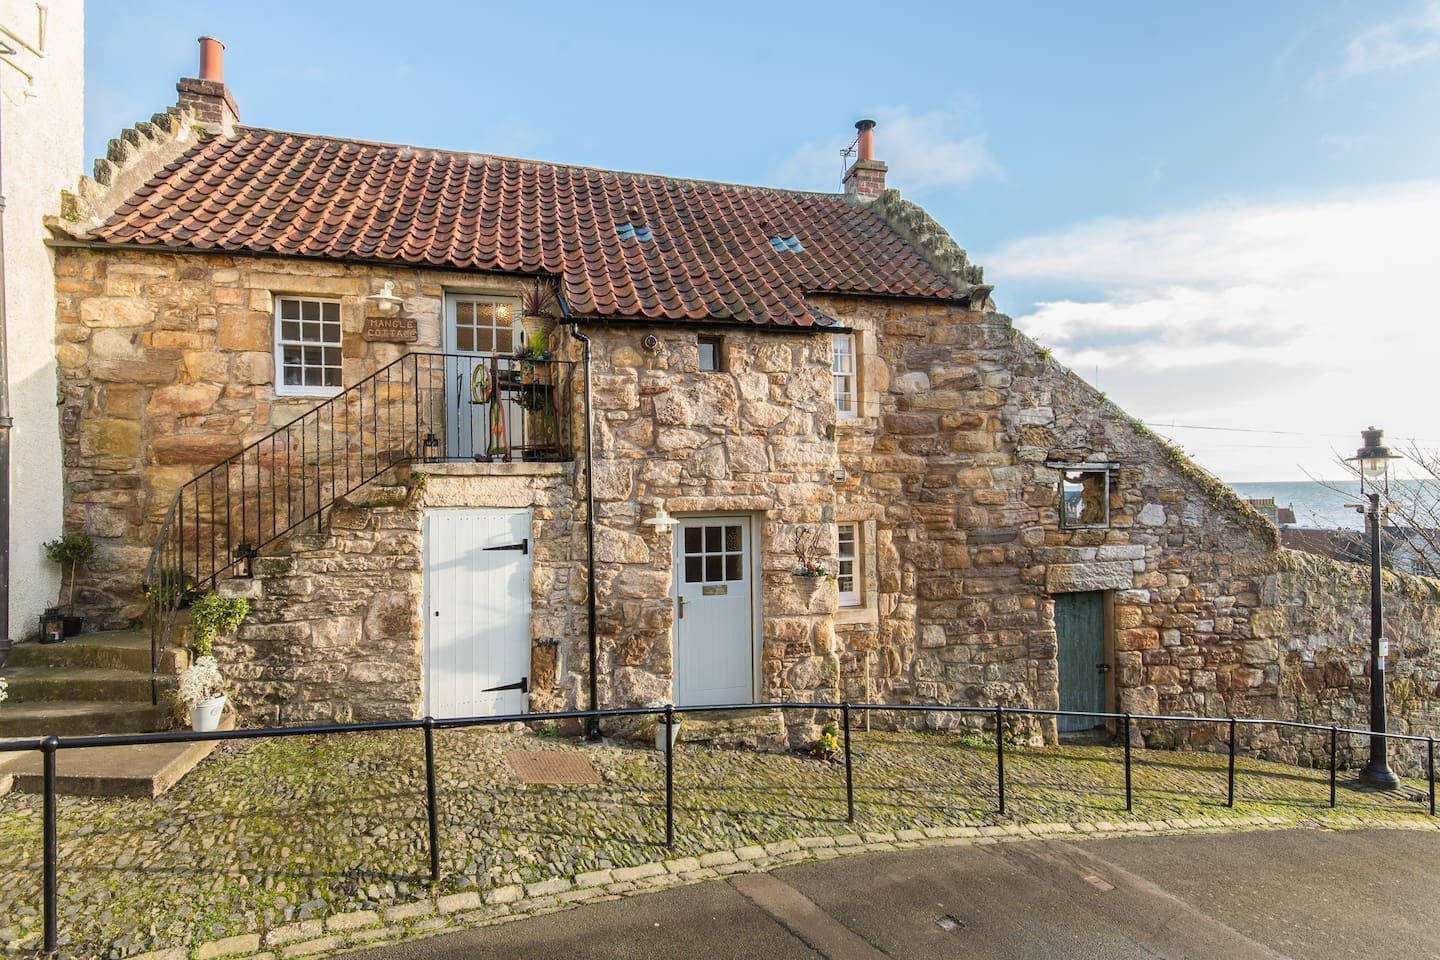 Mangle cottage, in Pittenweem, Fife .11 miles from St Andrews along the coast .